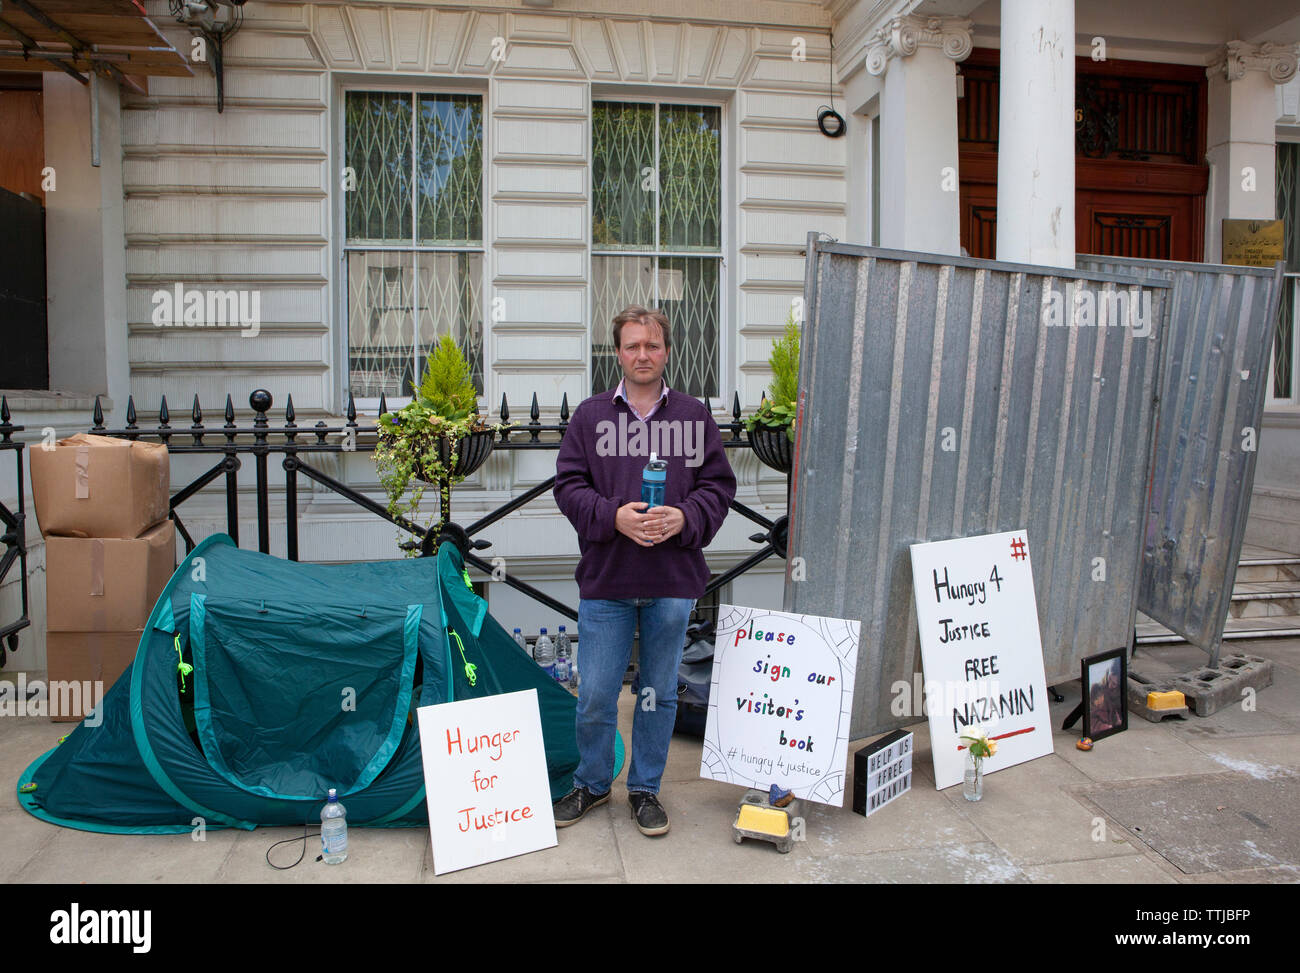 Richard Ratcliffe, the husband of Nazanin Zaghari-Ratcliffe, is on hunger strike, camping and staging a picket outside the Iranian Embassy in London. Stock Photo